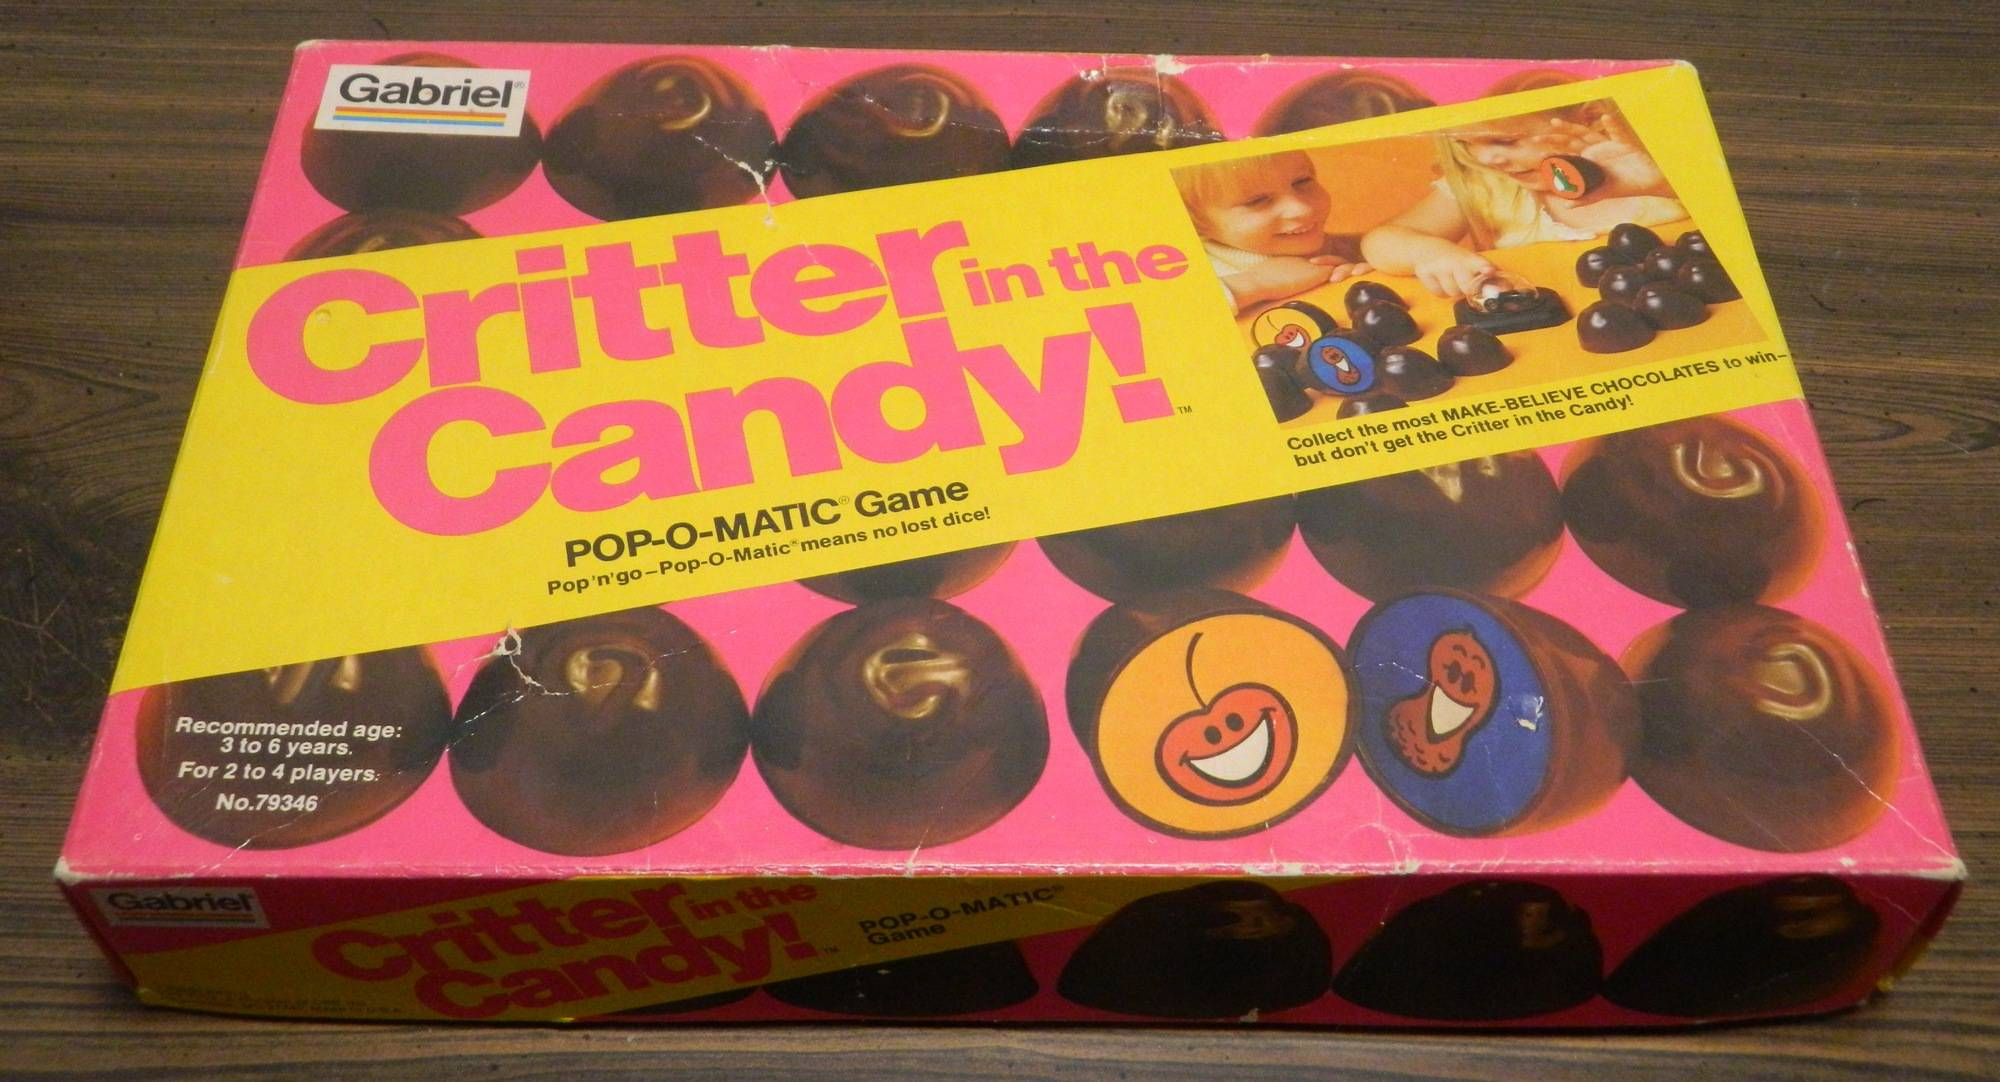 Box for Critter in the Candy